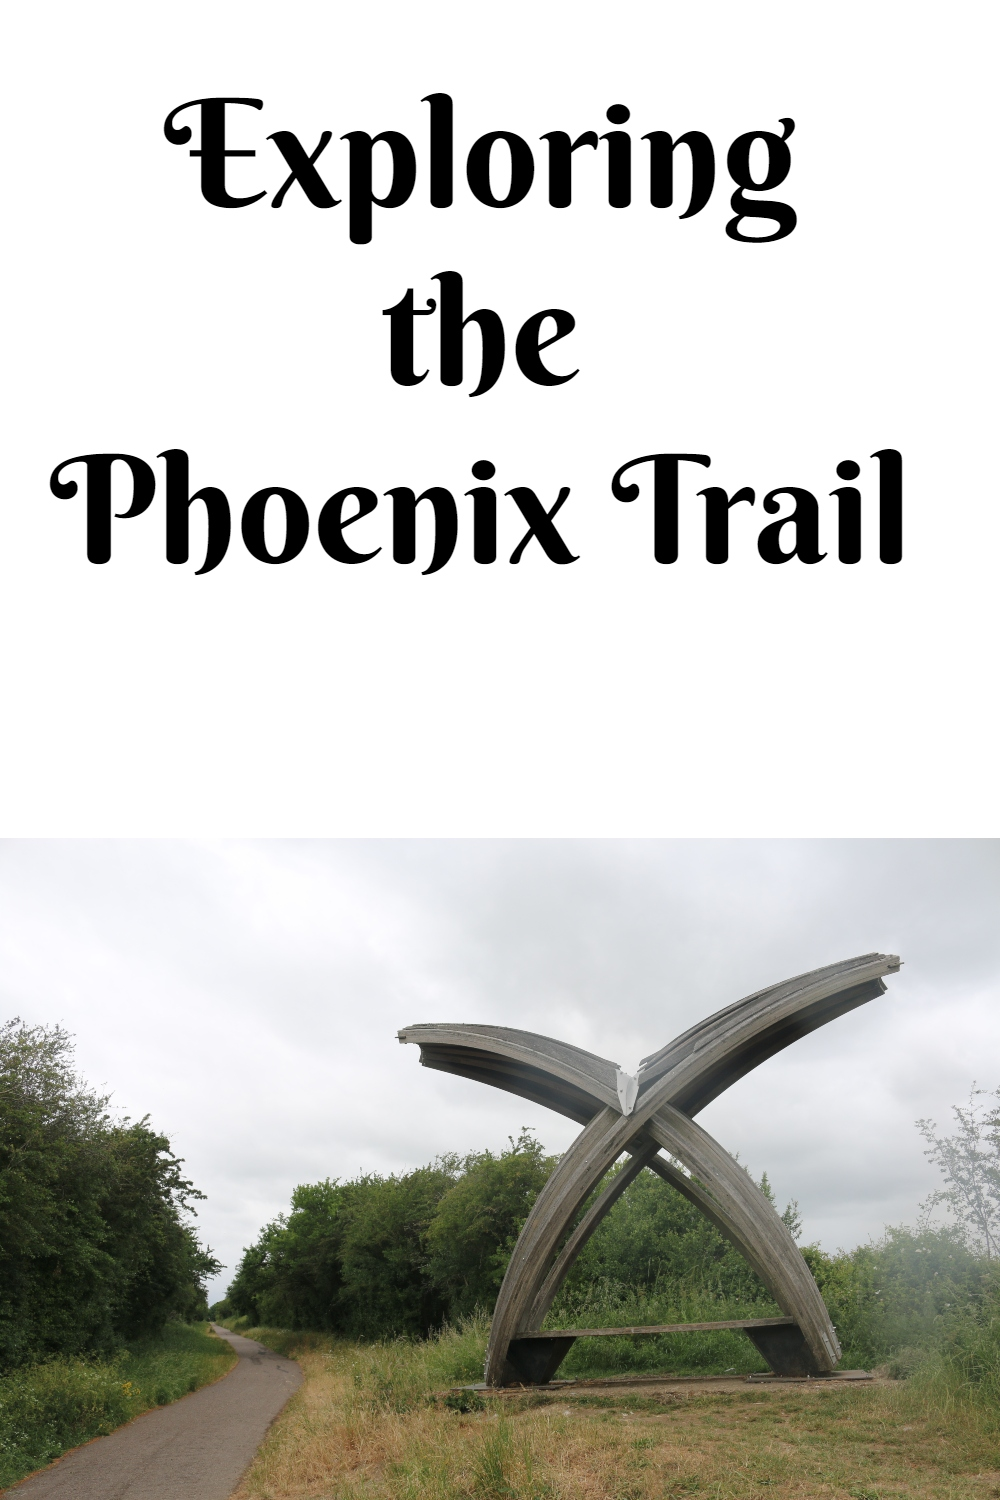 Exploring the Phoenix Trail